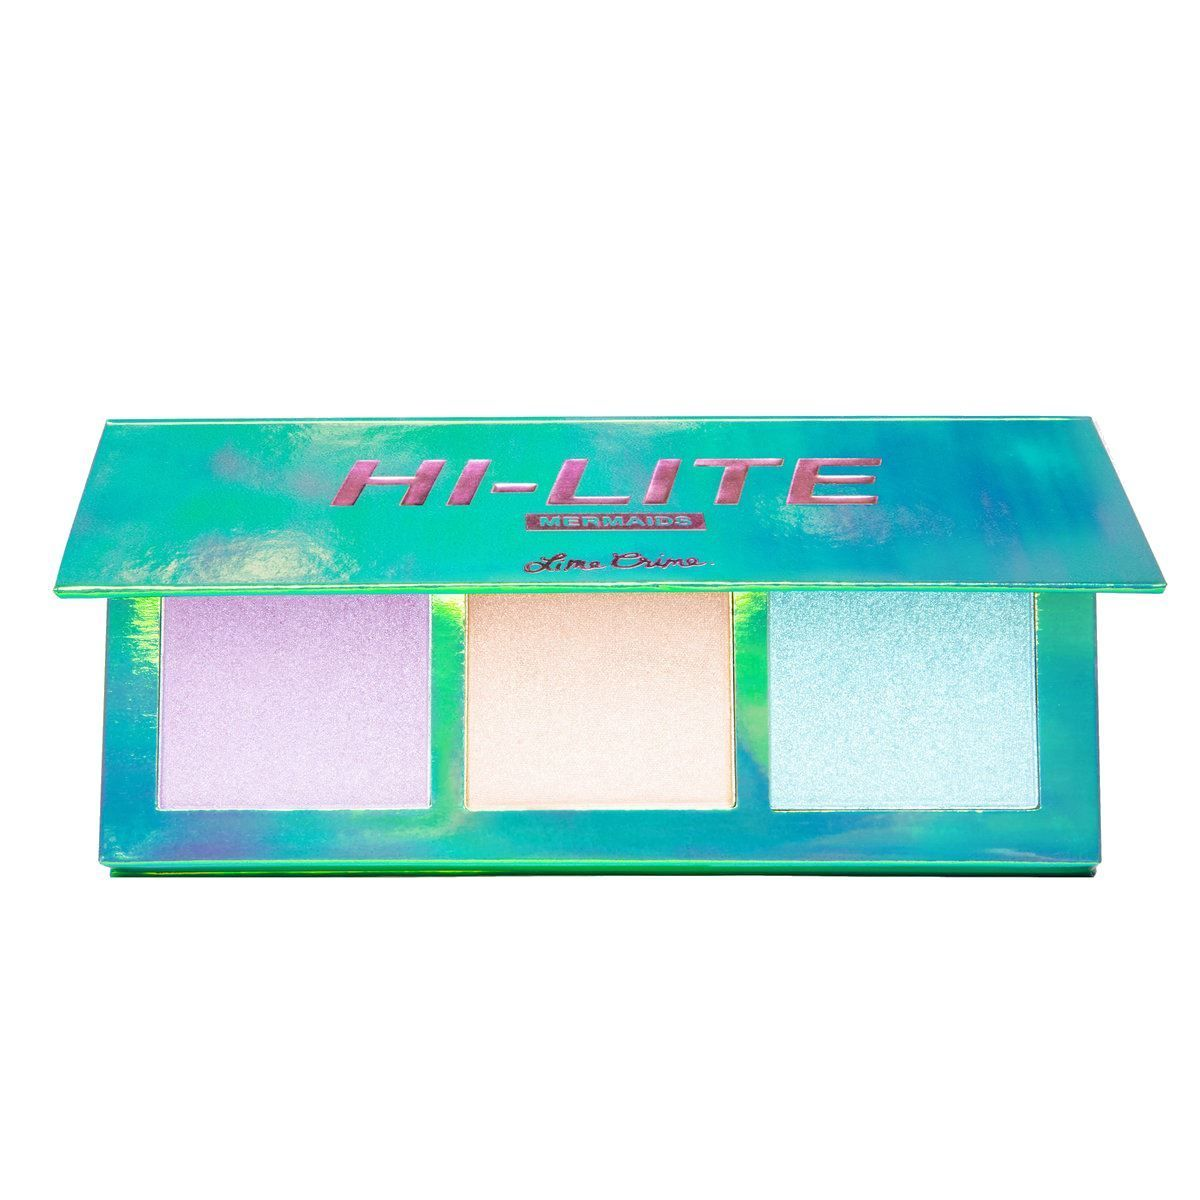 Hi-Lite Glitter-n-Glow Highlighter Palette - Mermaids Highlighter